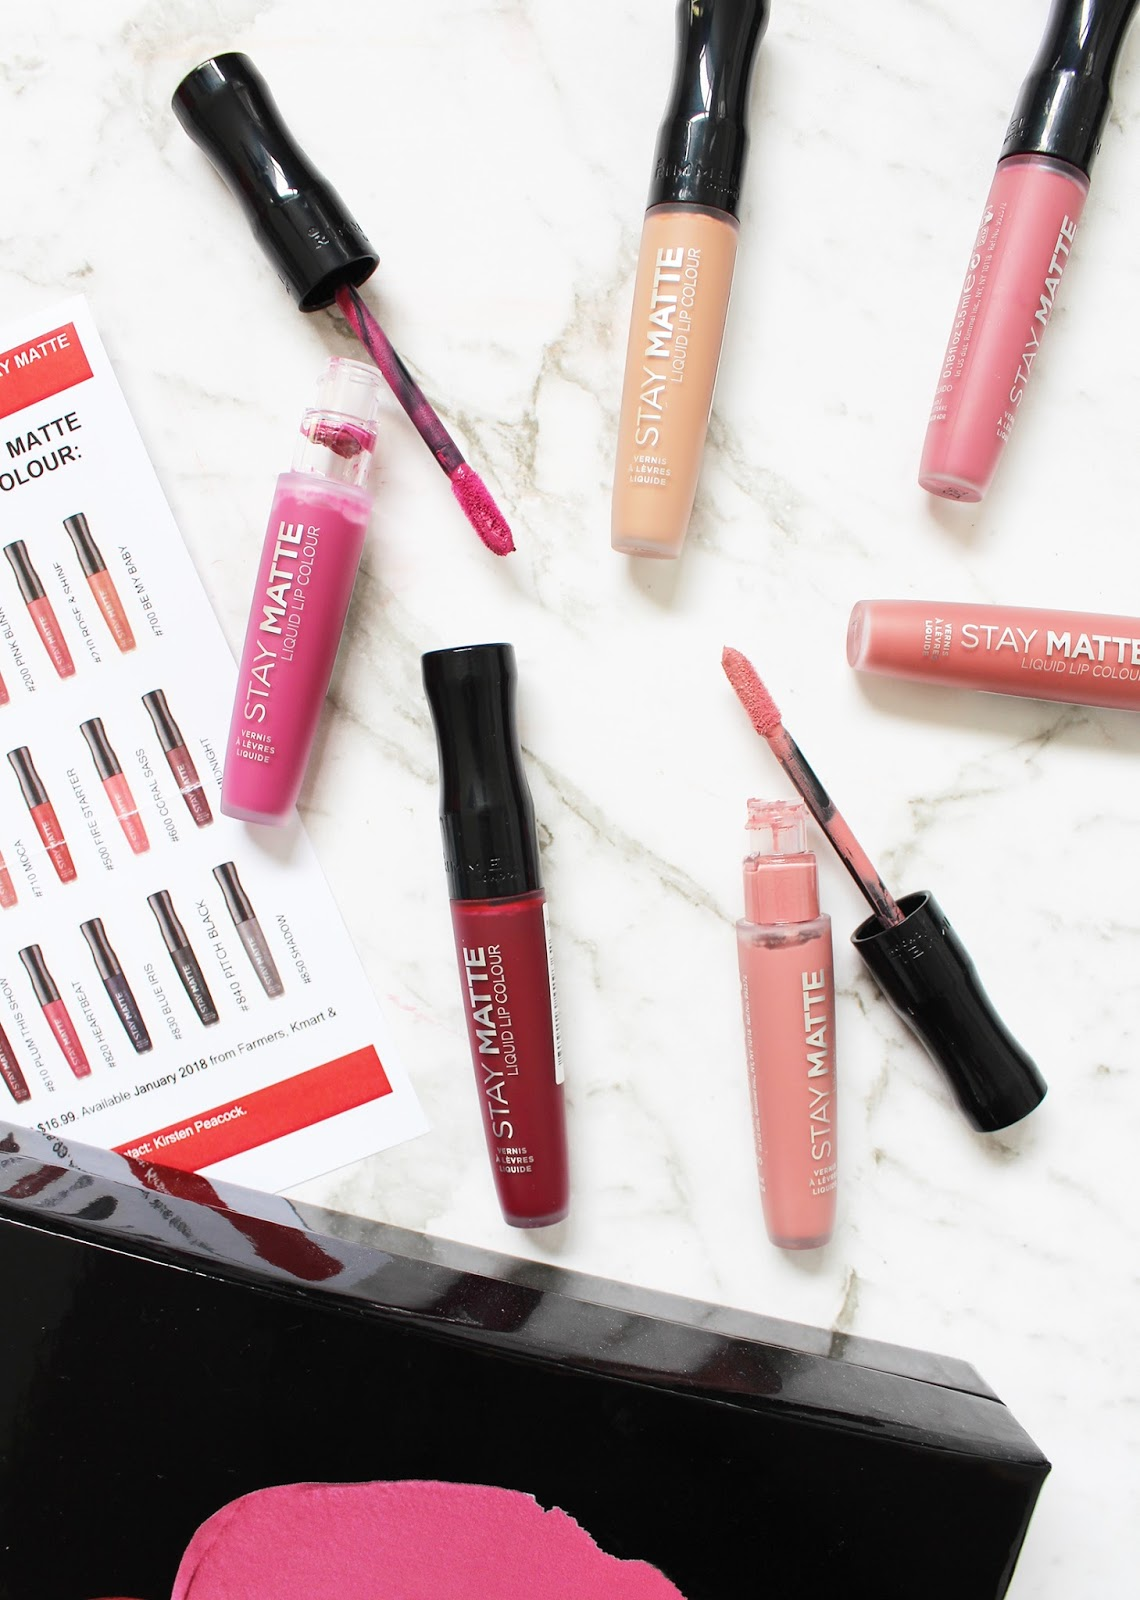 RIMMEL | New Stay Matte Liquid Lip Color - Review + Swatches - CassandraMyee